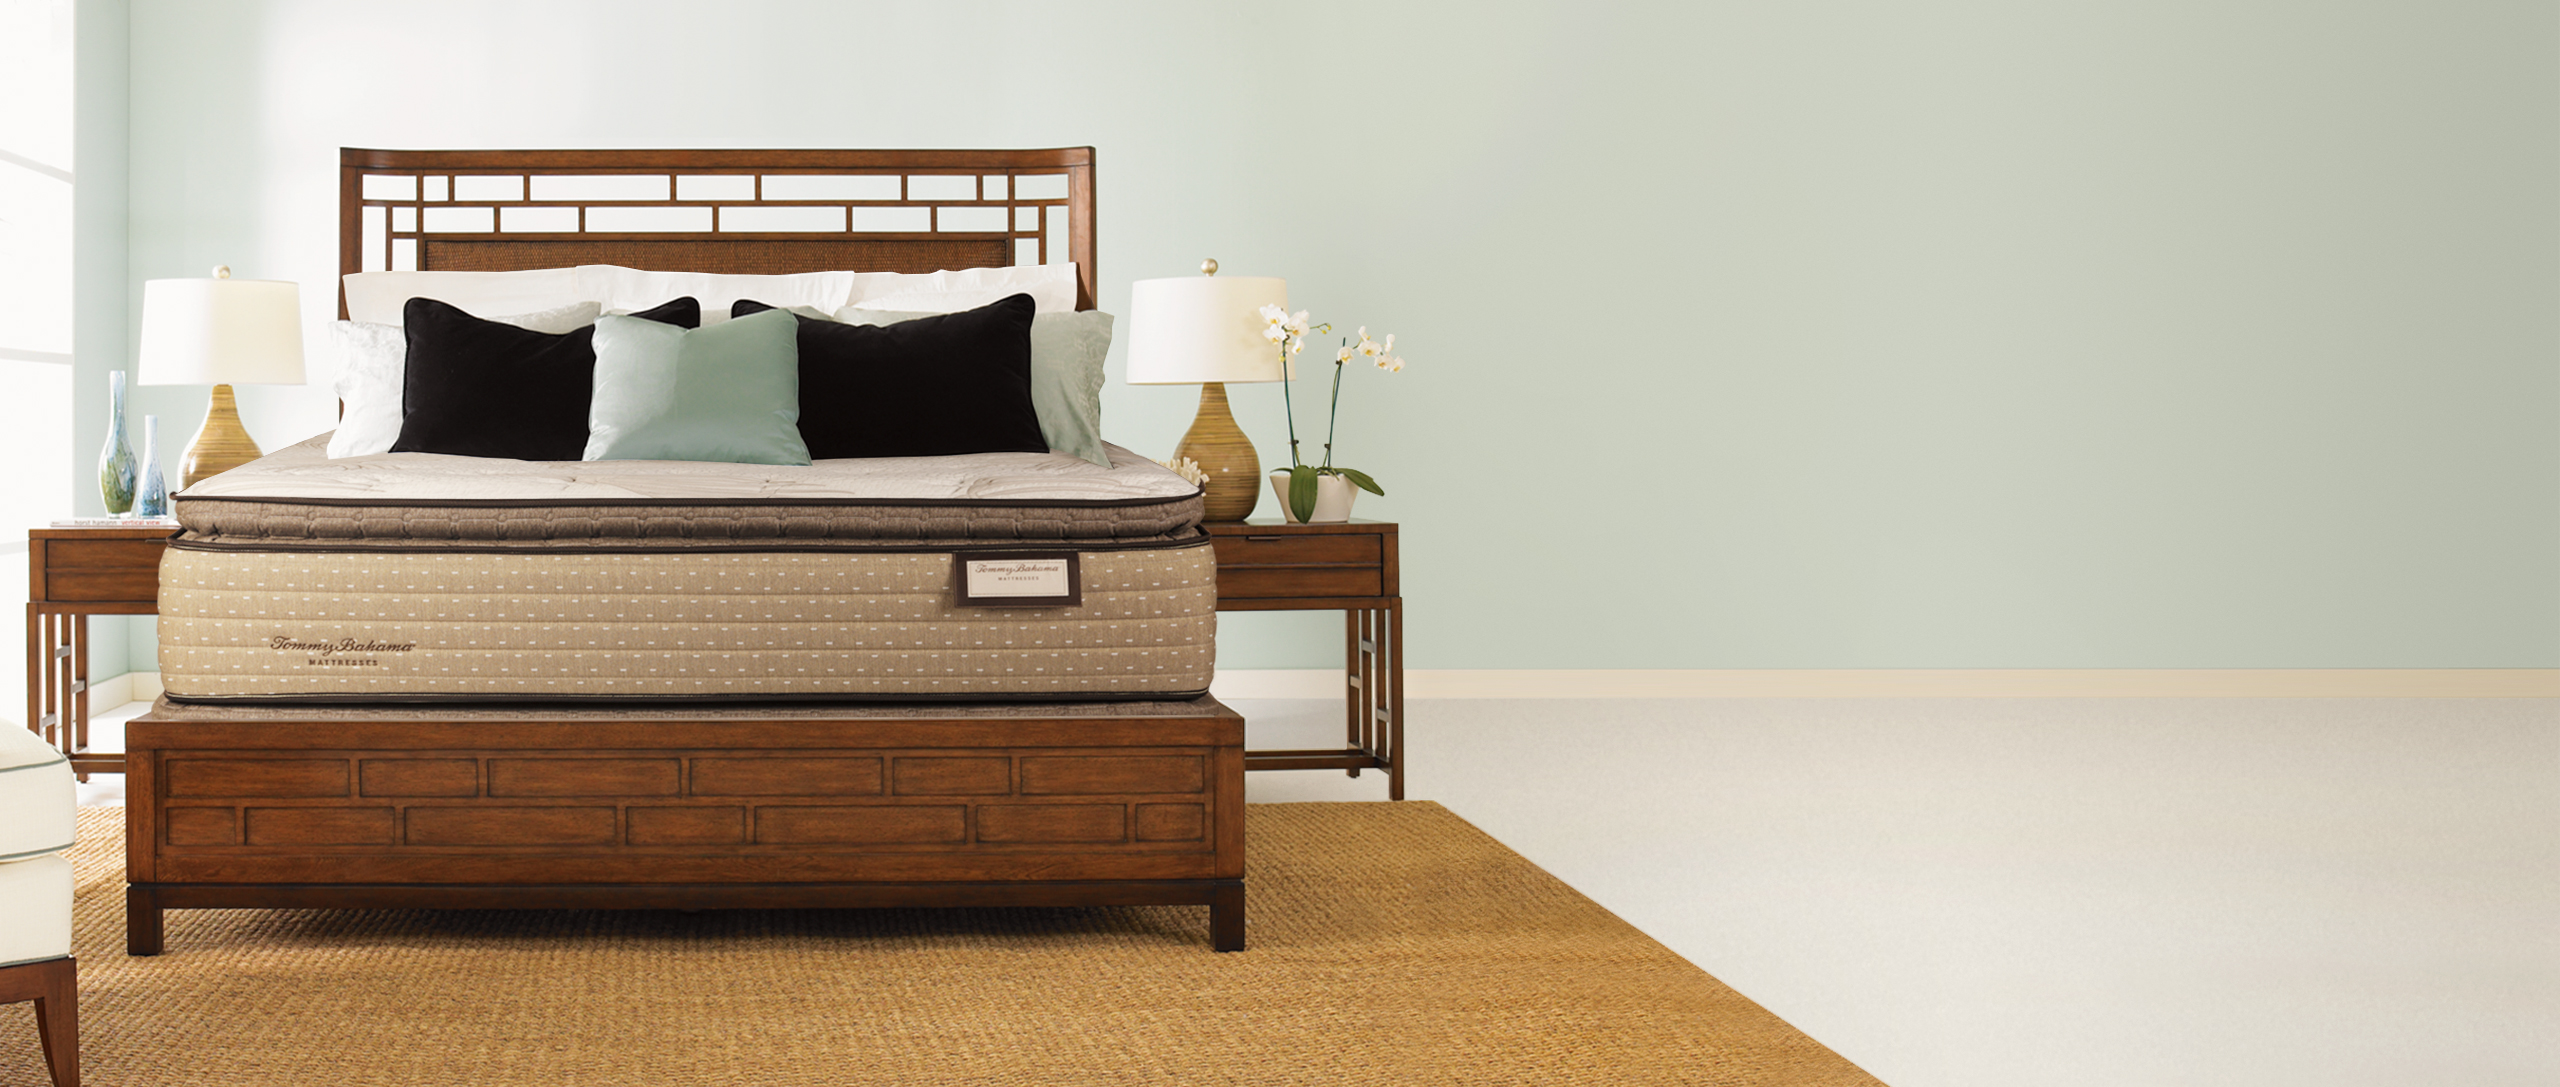 Tommy Bahama mattress in a bedroom setting